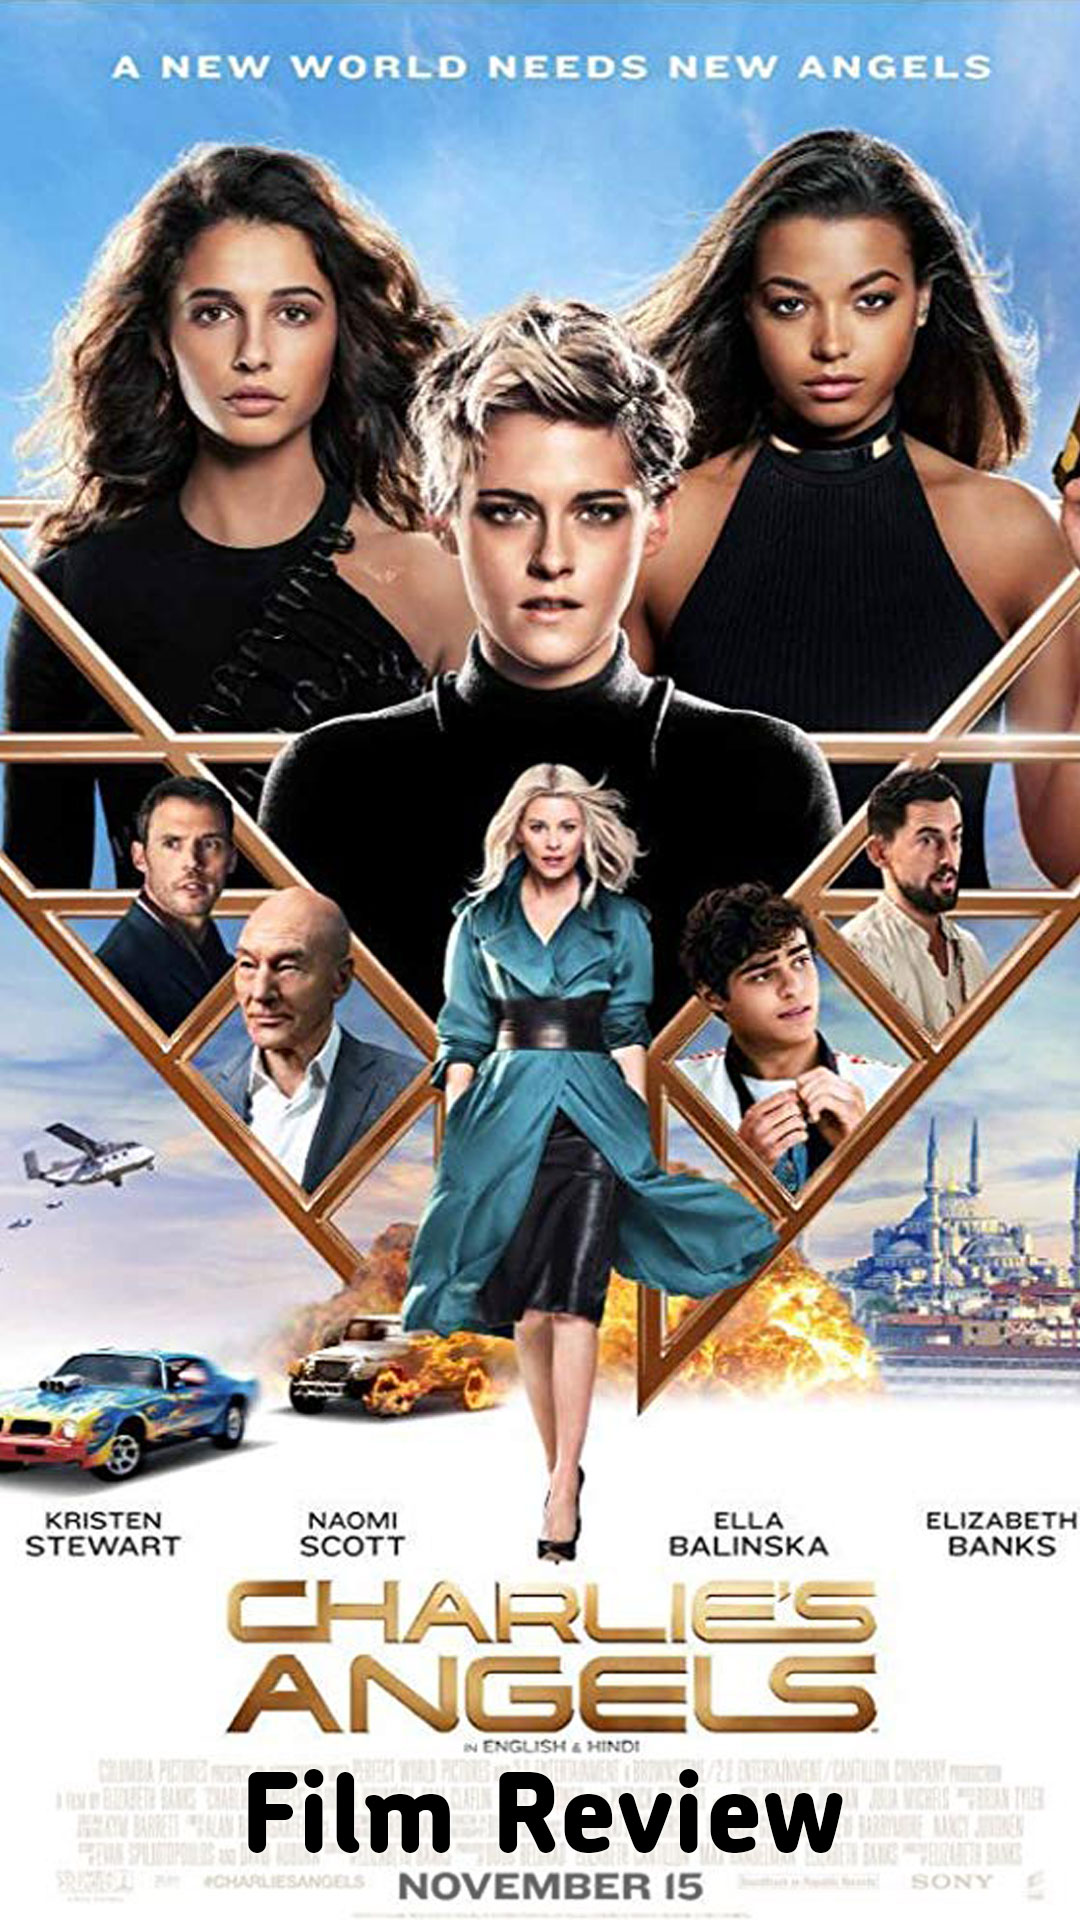 Charlie's Angels (2019) Film Review